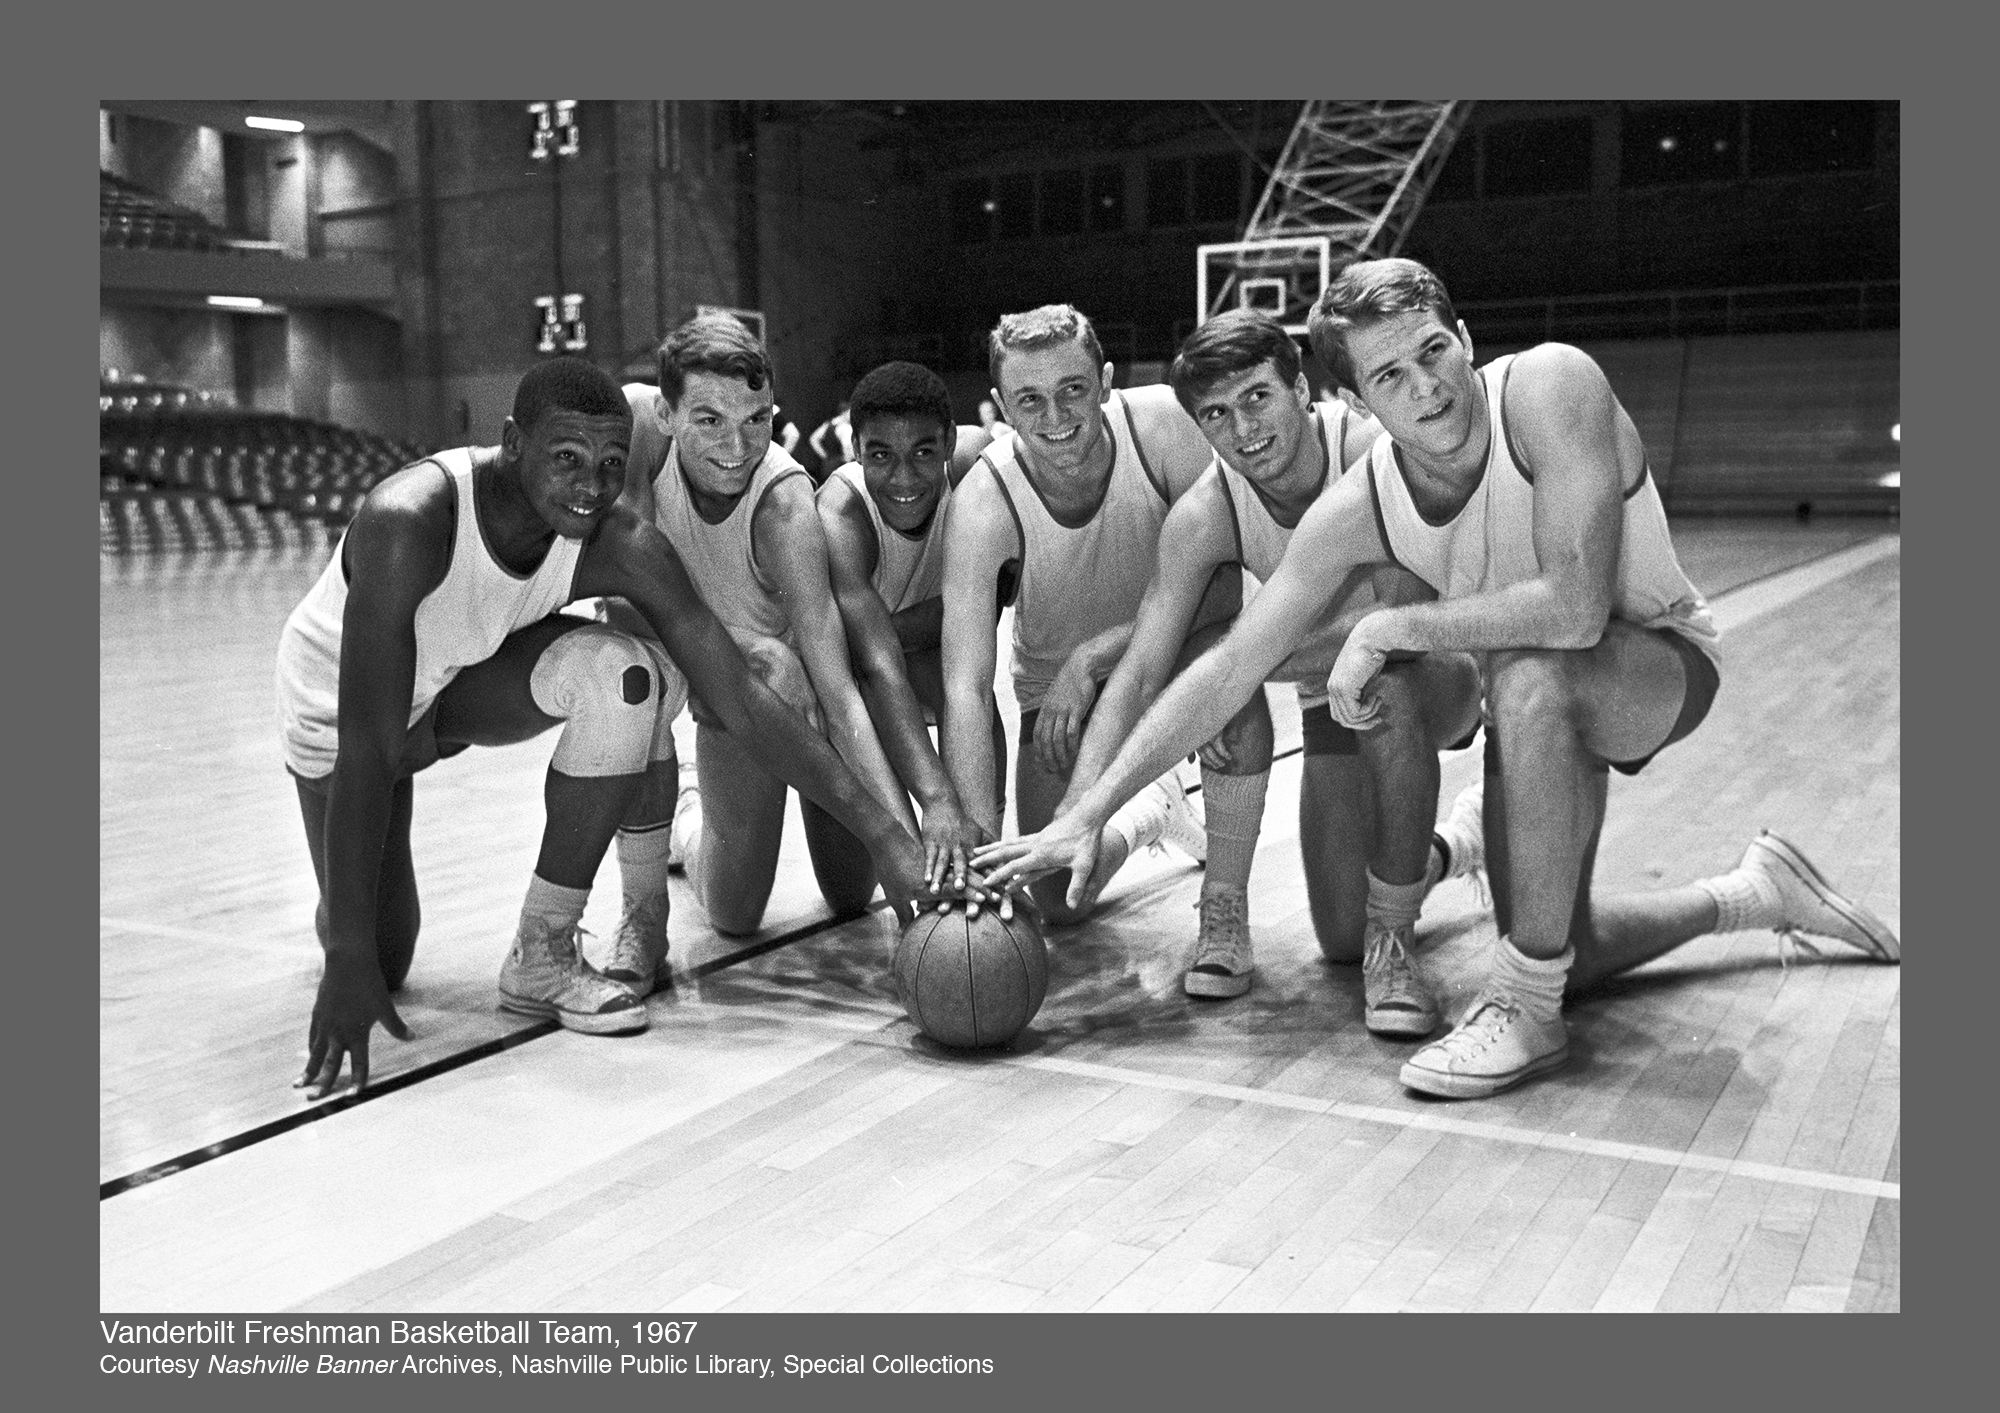 Perry Wallace, Godfrey Dillard on Freshmen team with teammates - 1967